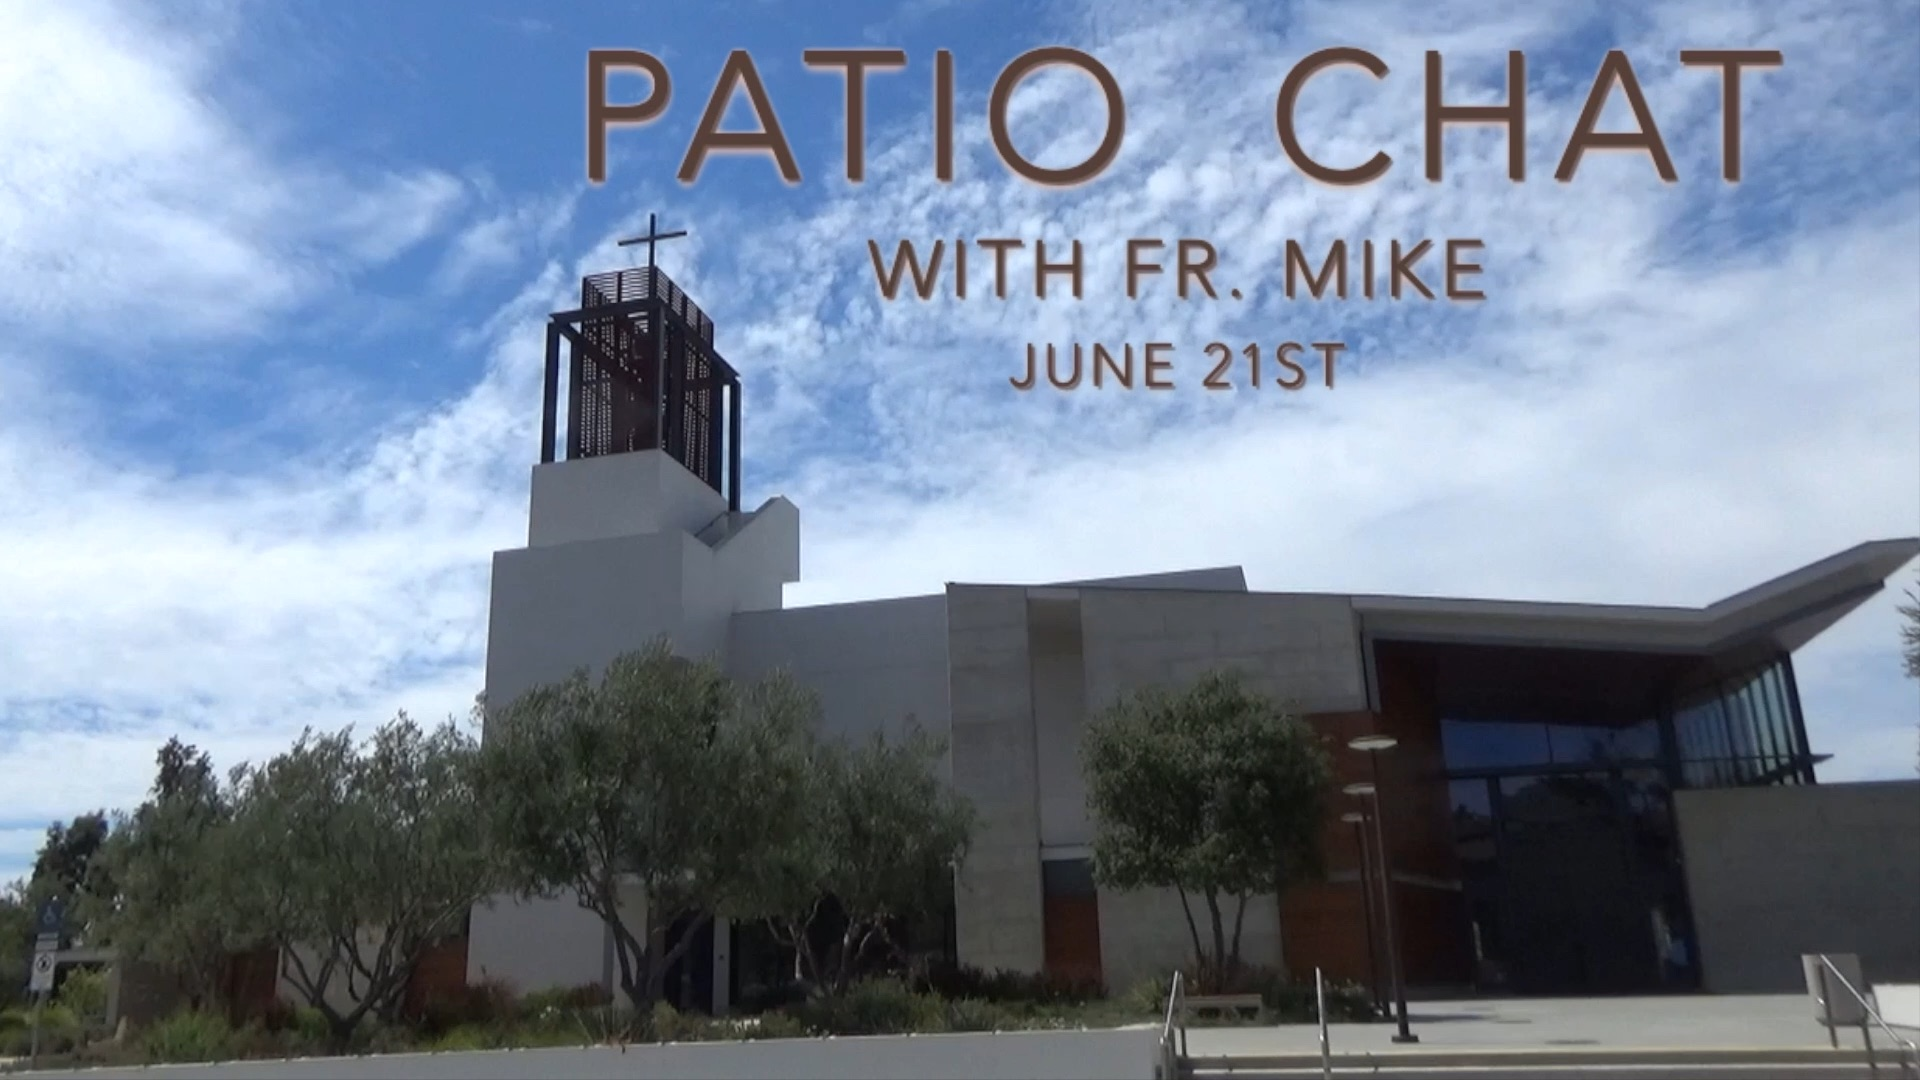 Join us for an important Patio Chat with Fr. Mike